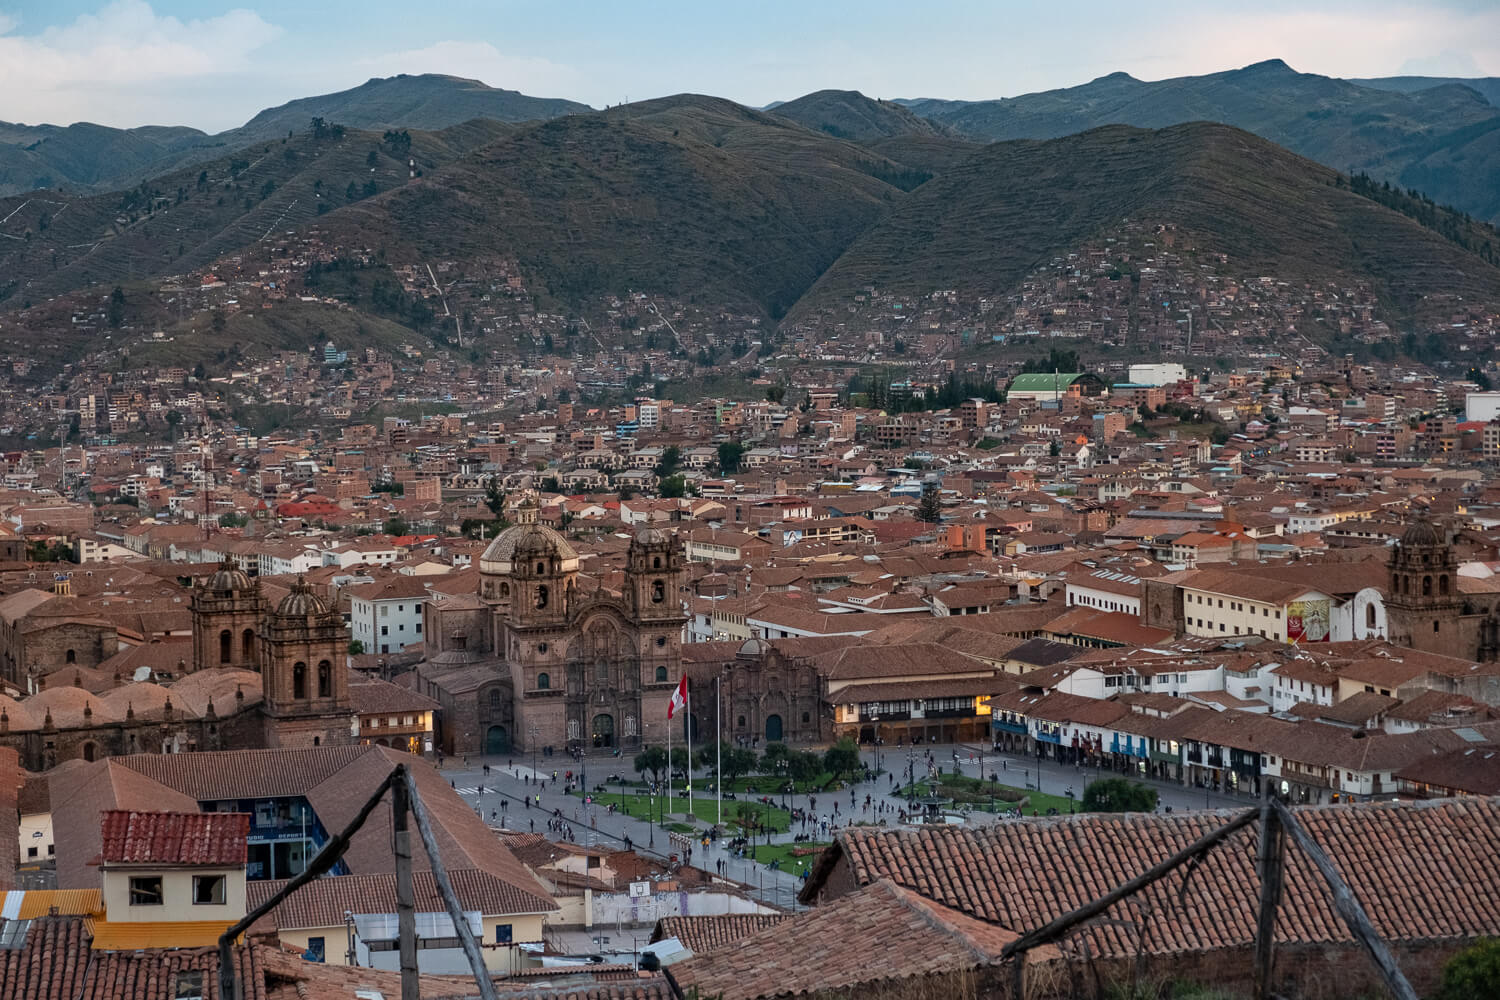 """A photographic travel guide and itinerary to Cusco. Travel photography and guide by © Natasha Lequepeys for """"And Then I Met Yoko"""". #cusco #peru #travelguide #photoblog #travelblog #travelphotography #landscapephotography #travelitinerary #fujifilm #southamerica #peruitinerary #sacredvalley #incasights #machupicchu #cusco #ancientruins #incatrail #ValleSagrado #travel #cuscoitinerary"""